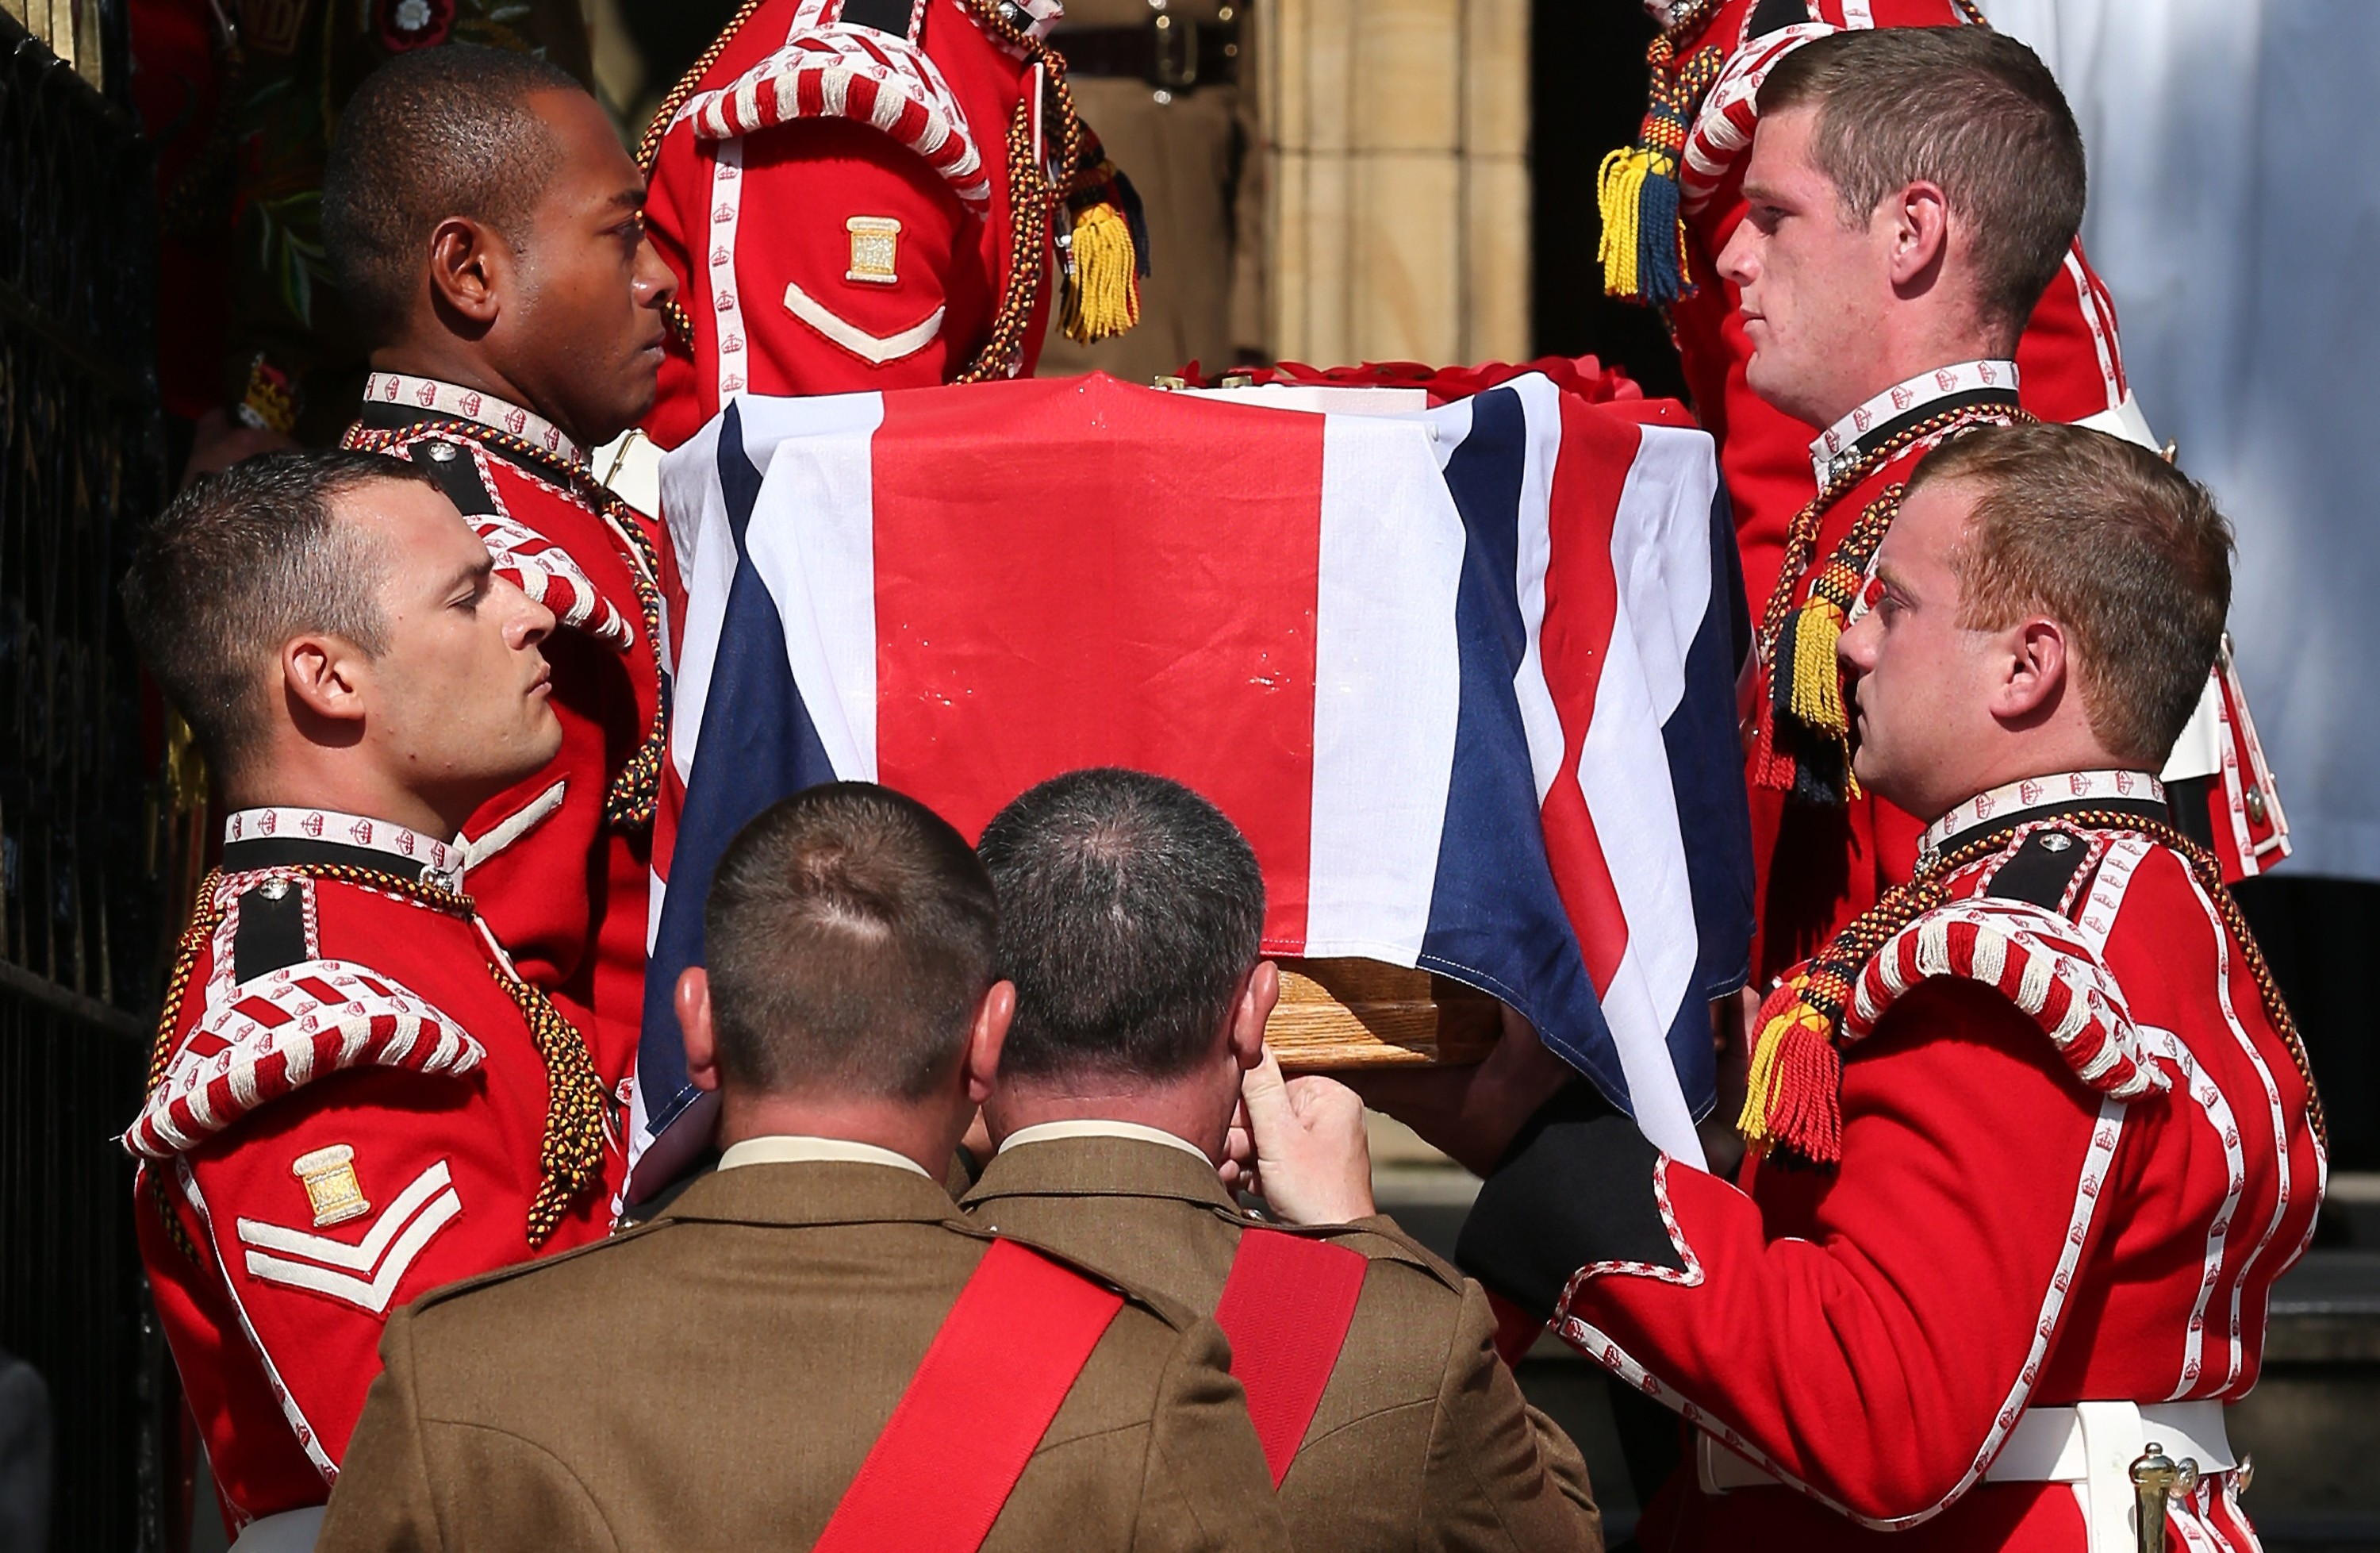 Friends and family of Lee Rigby gather for emotional vigil to honour murdered soldier